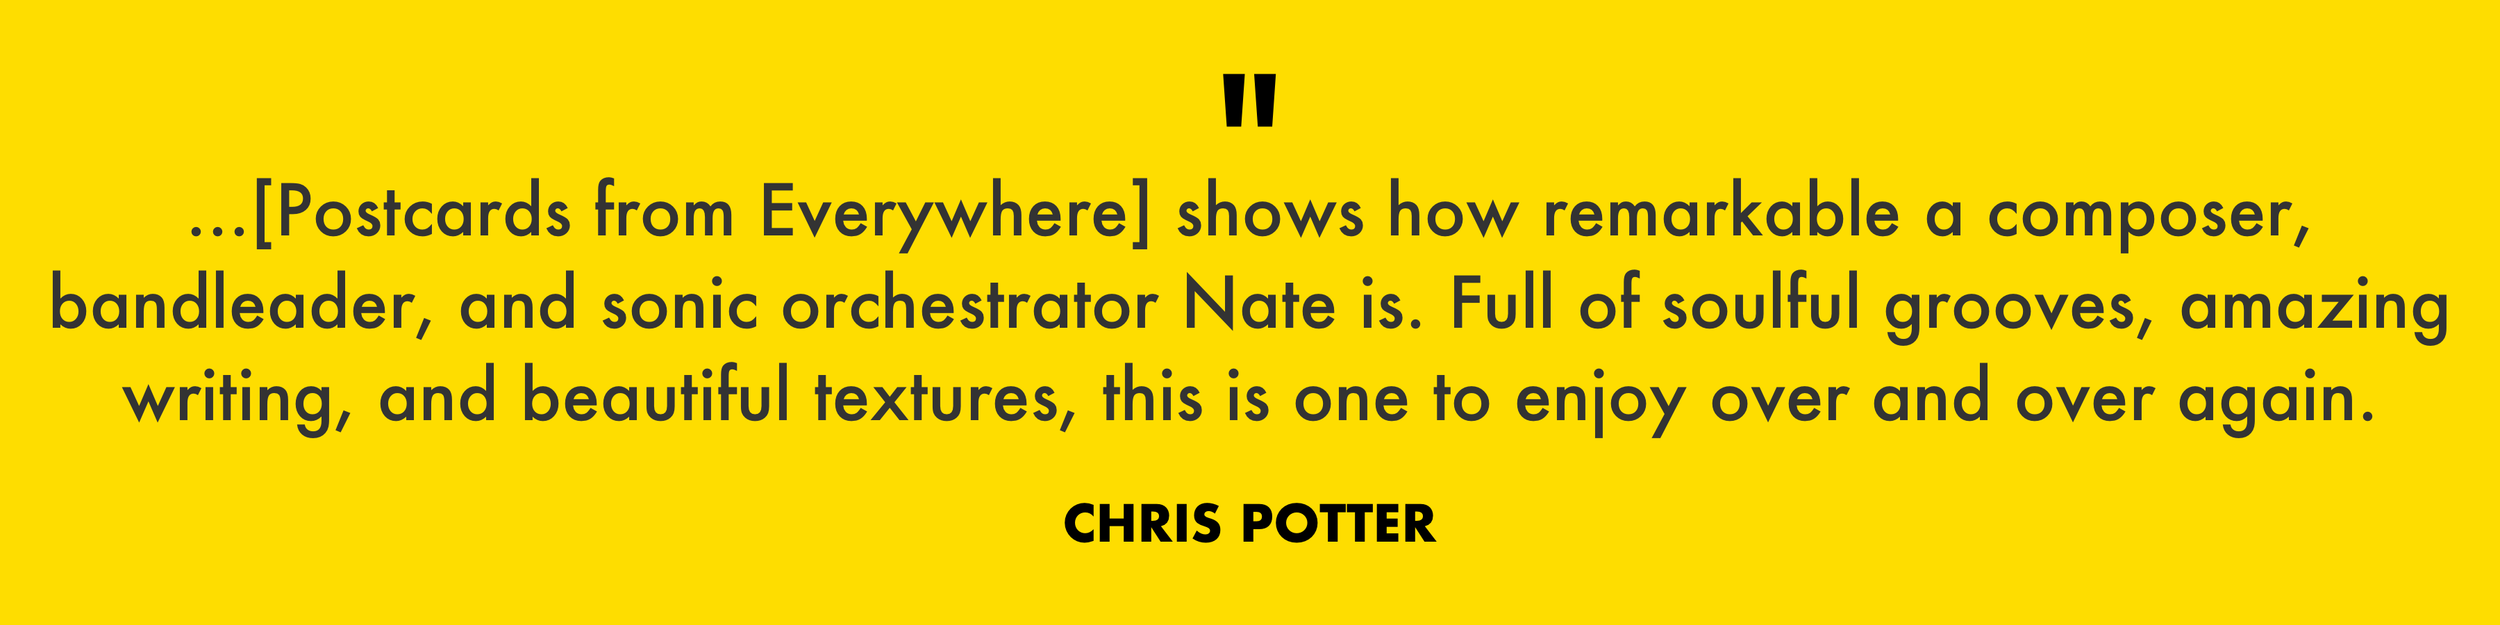 Qoute_ChrisPotter-yellow.png